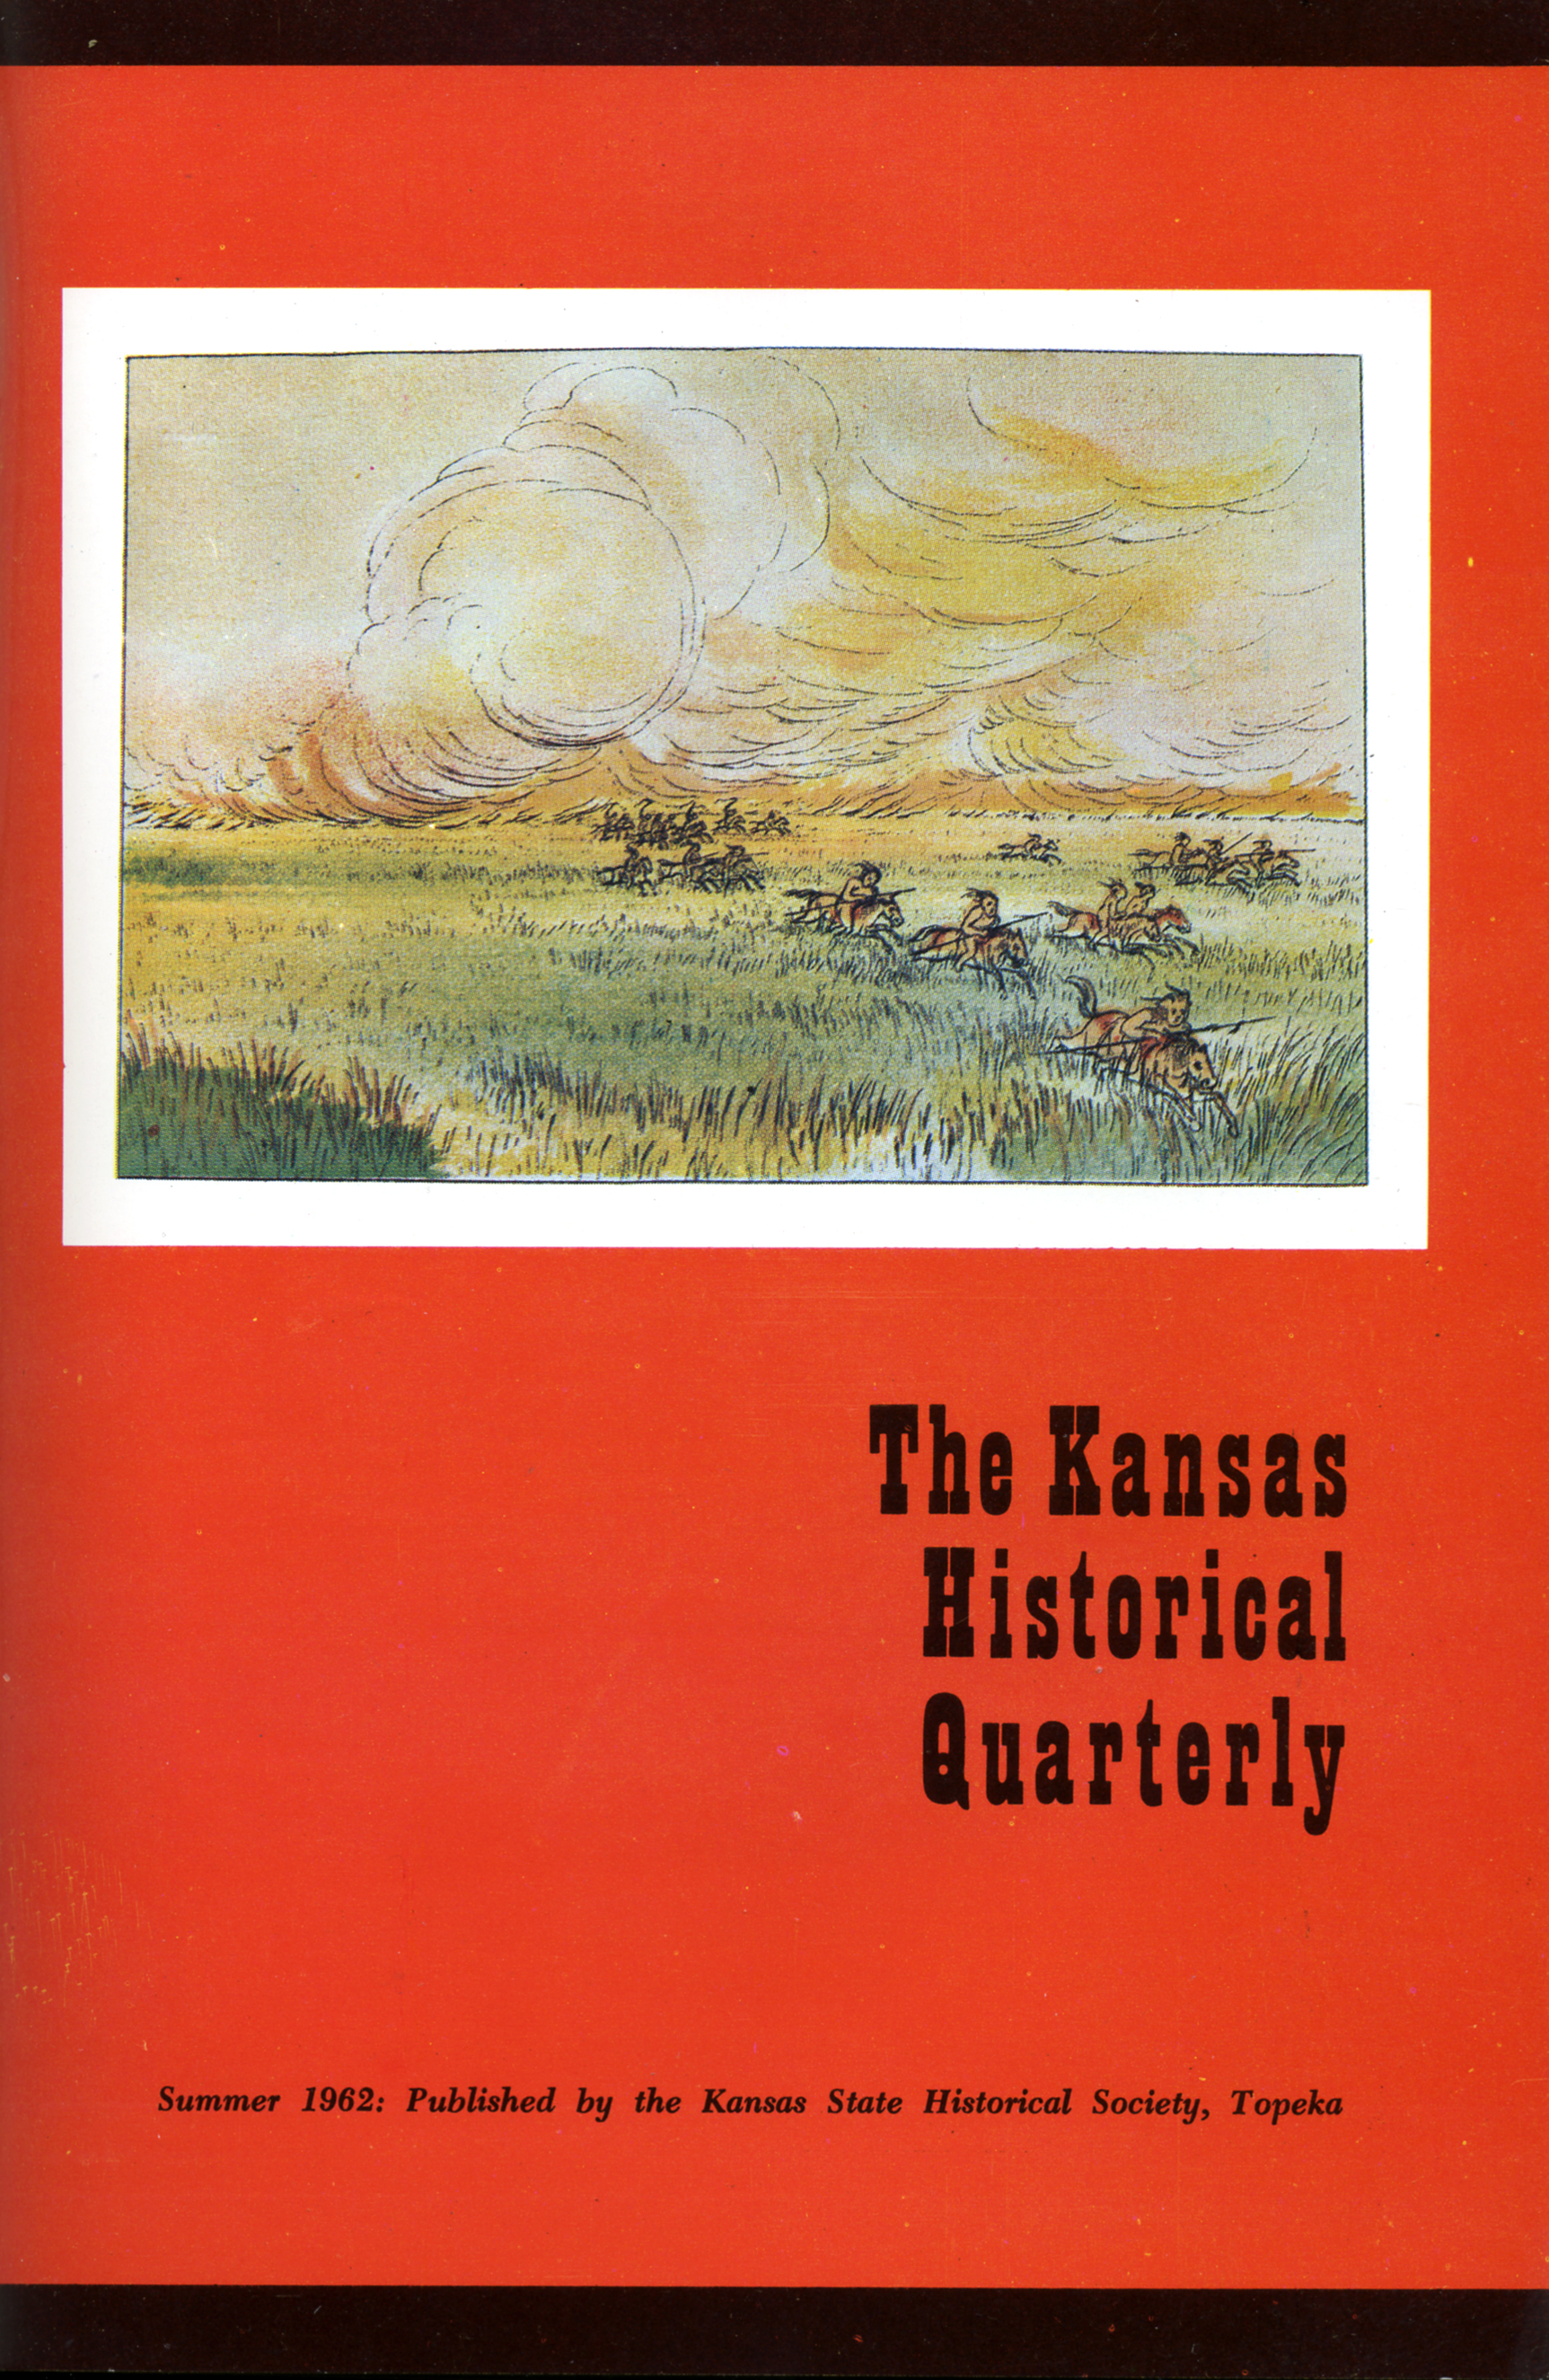 Kansas Historical Quarterly, Summer 1962